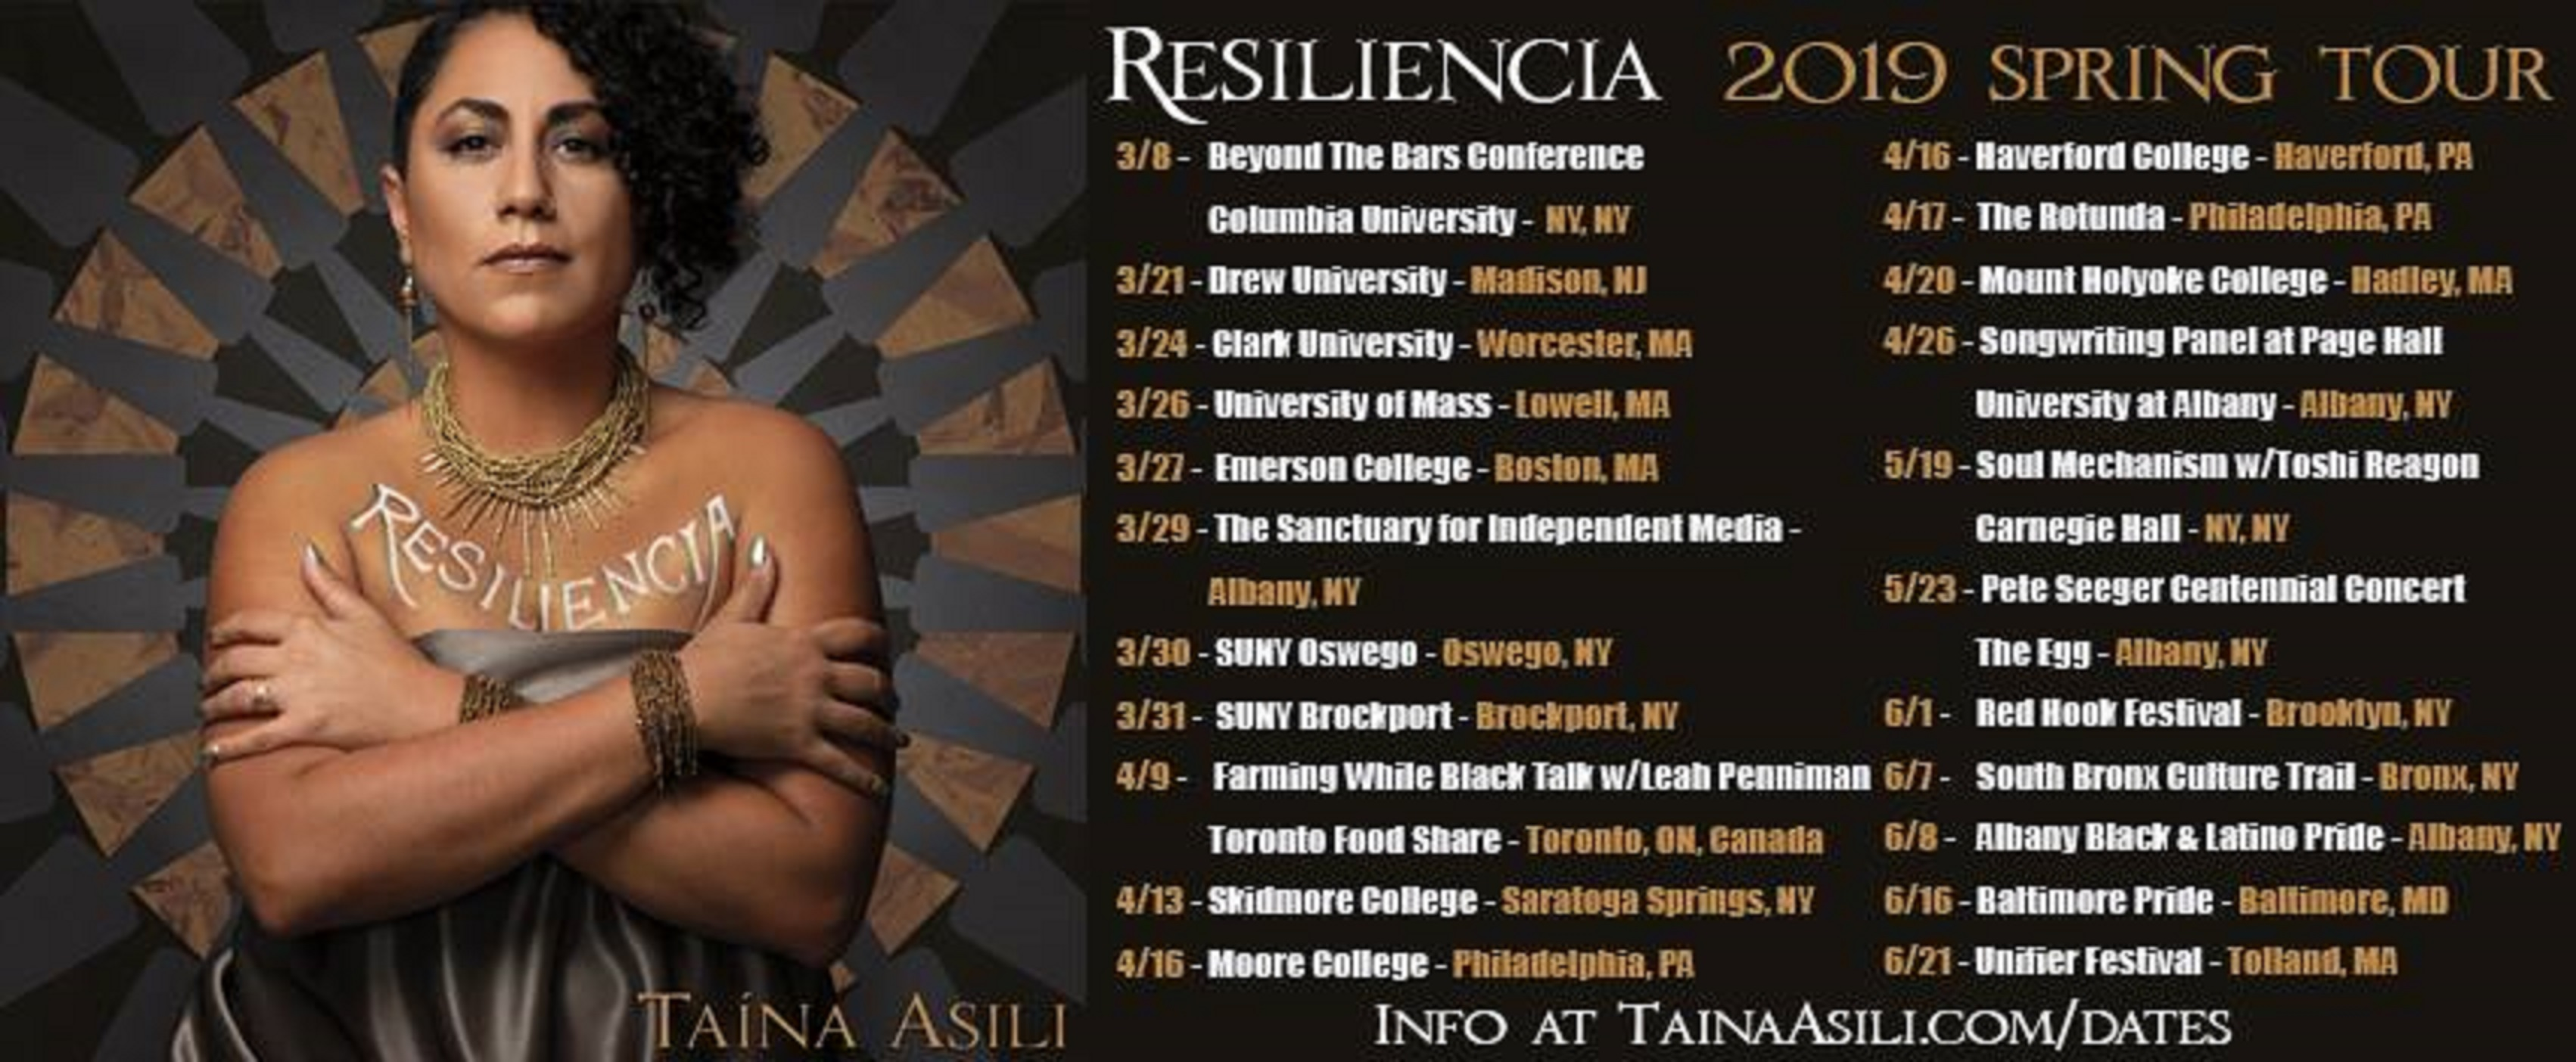 Songs of Resilience: Taína Asili at the intersection of the personal and the political